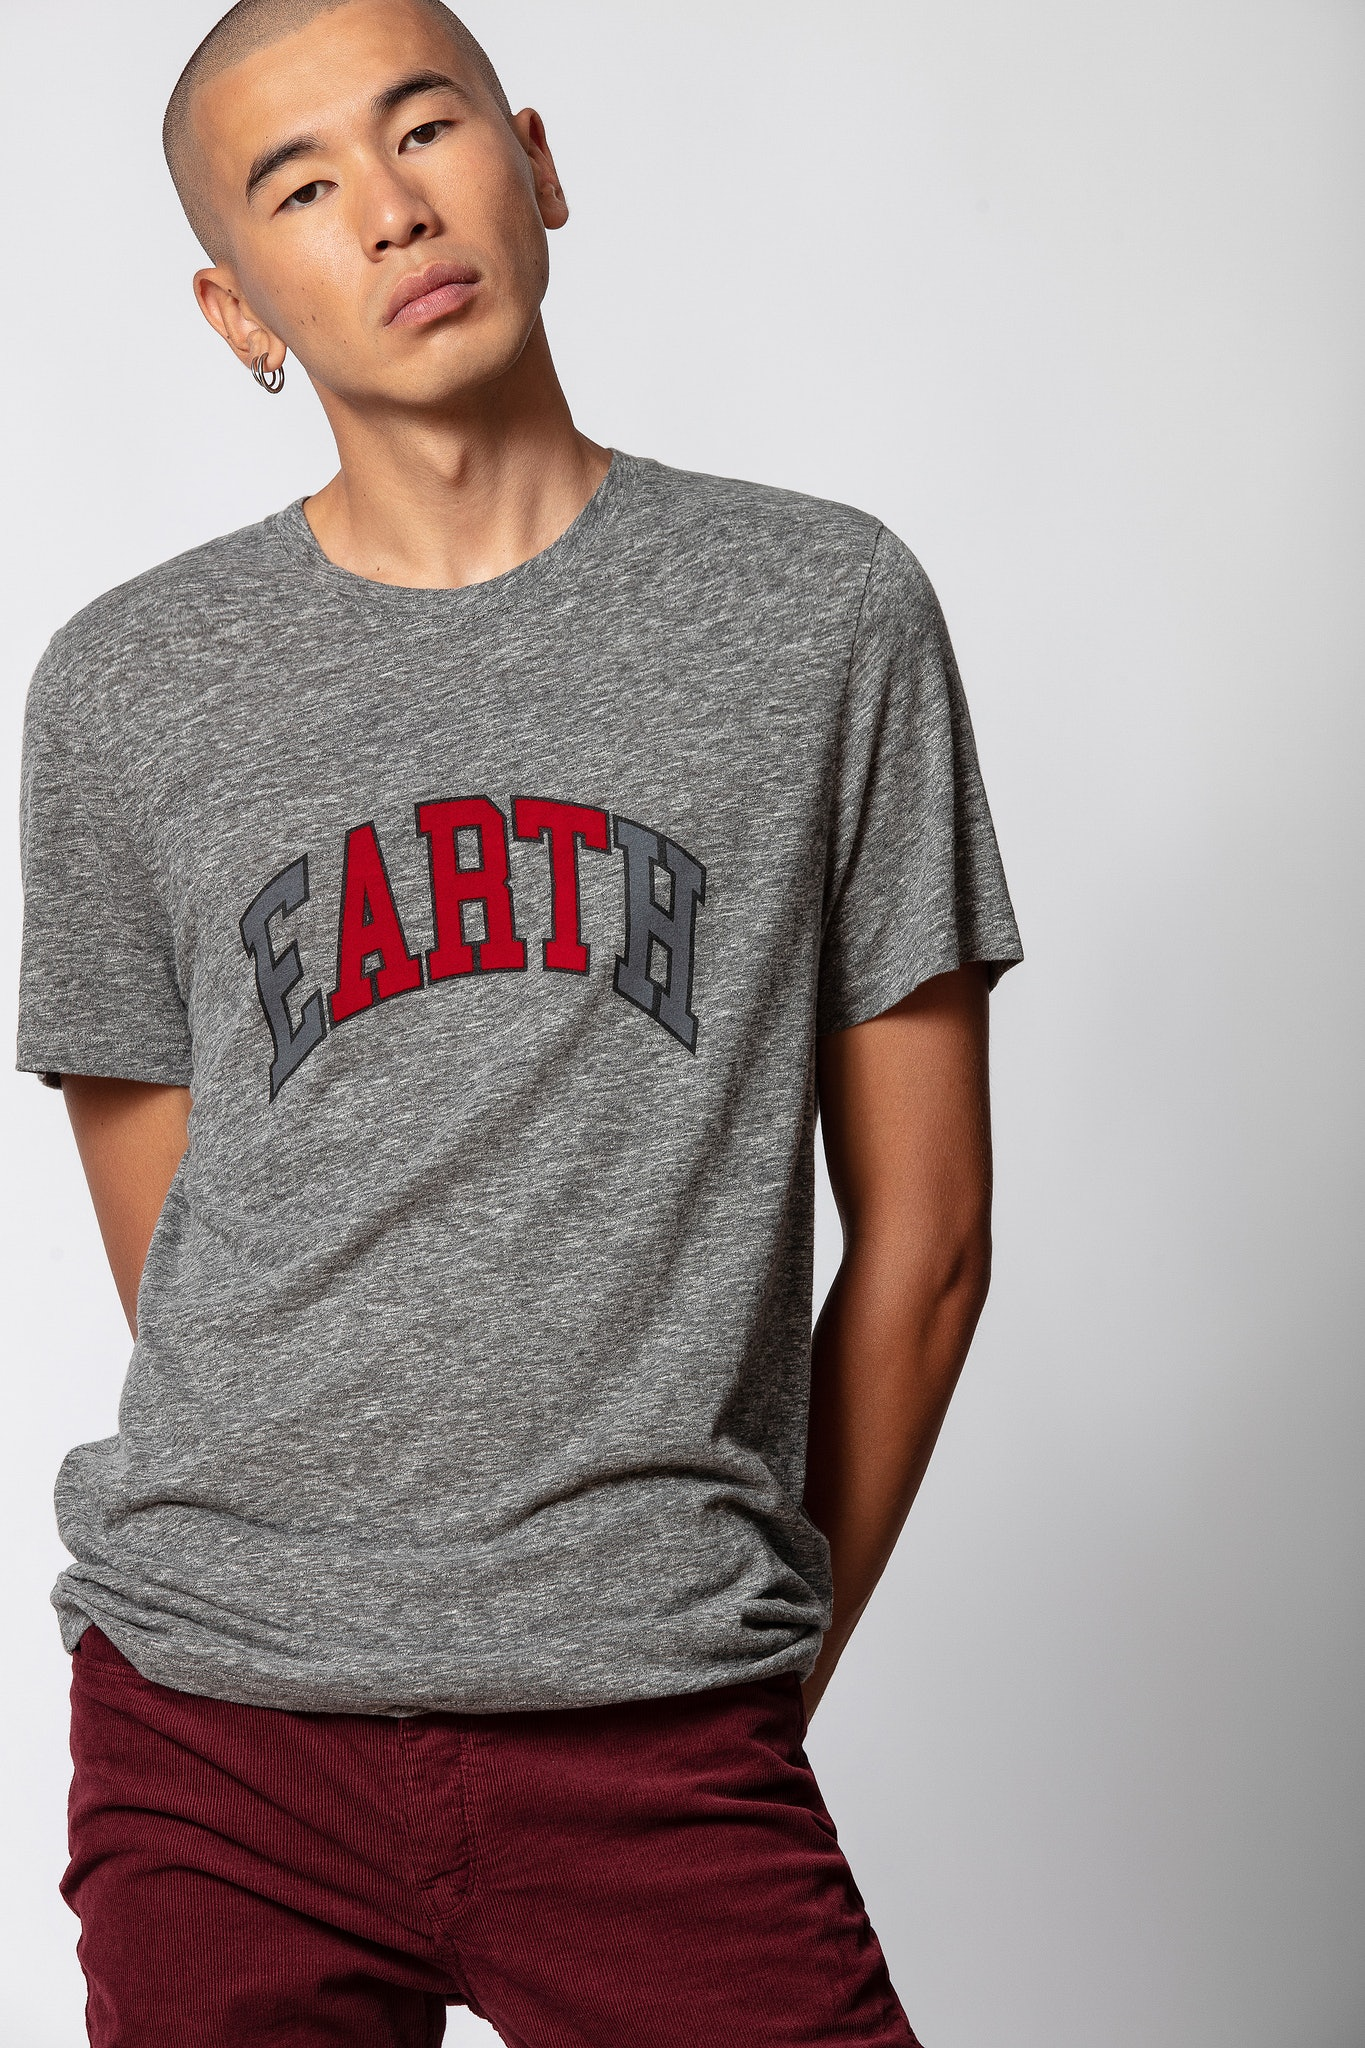 Tommy Earth T-shirt